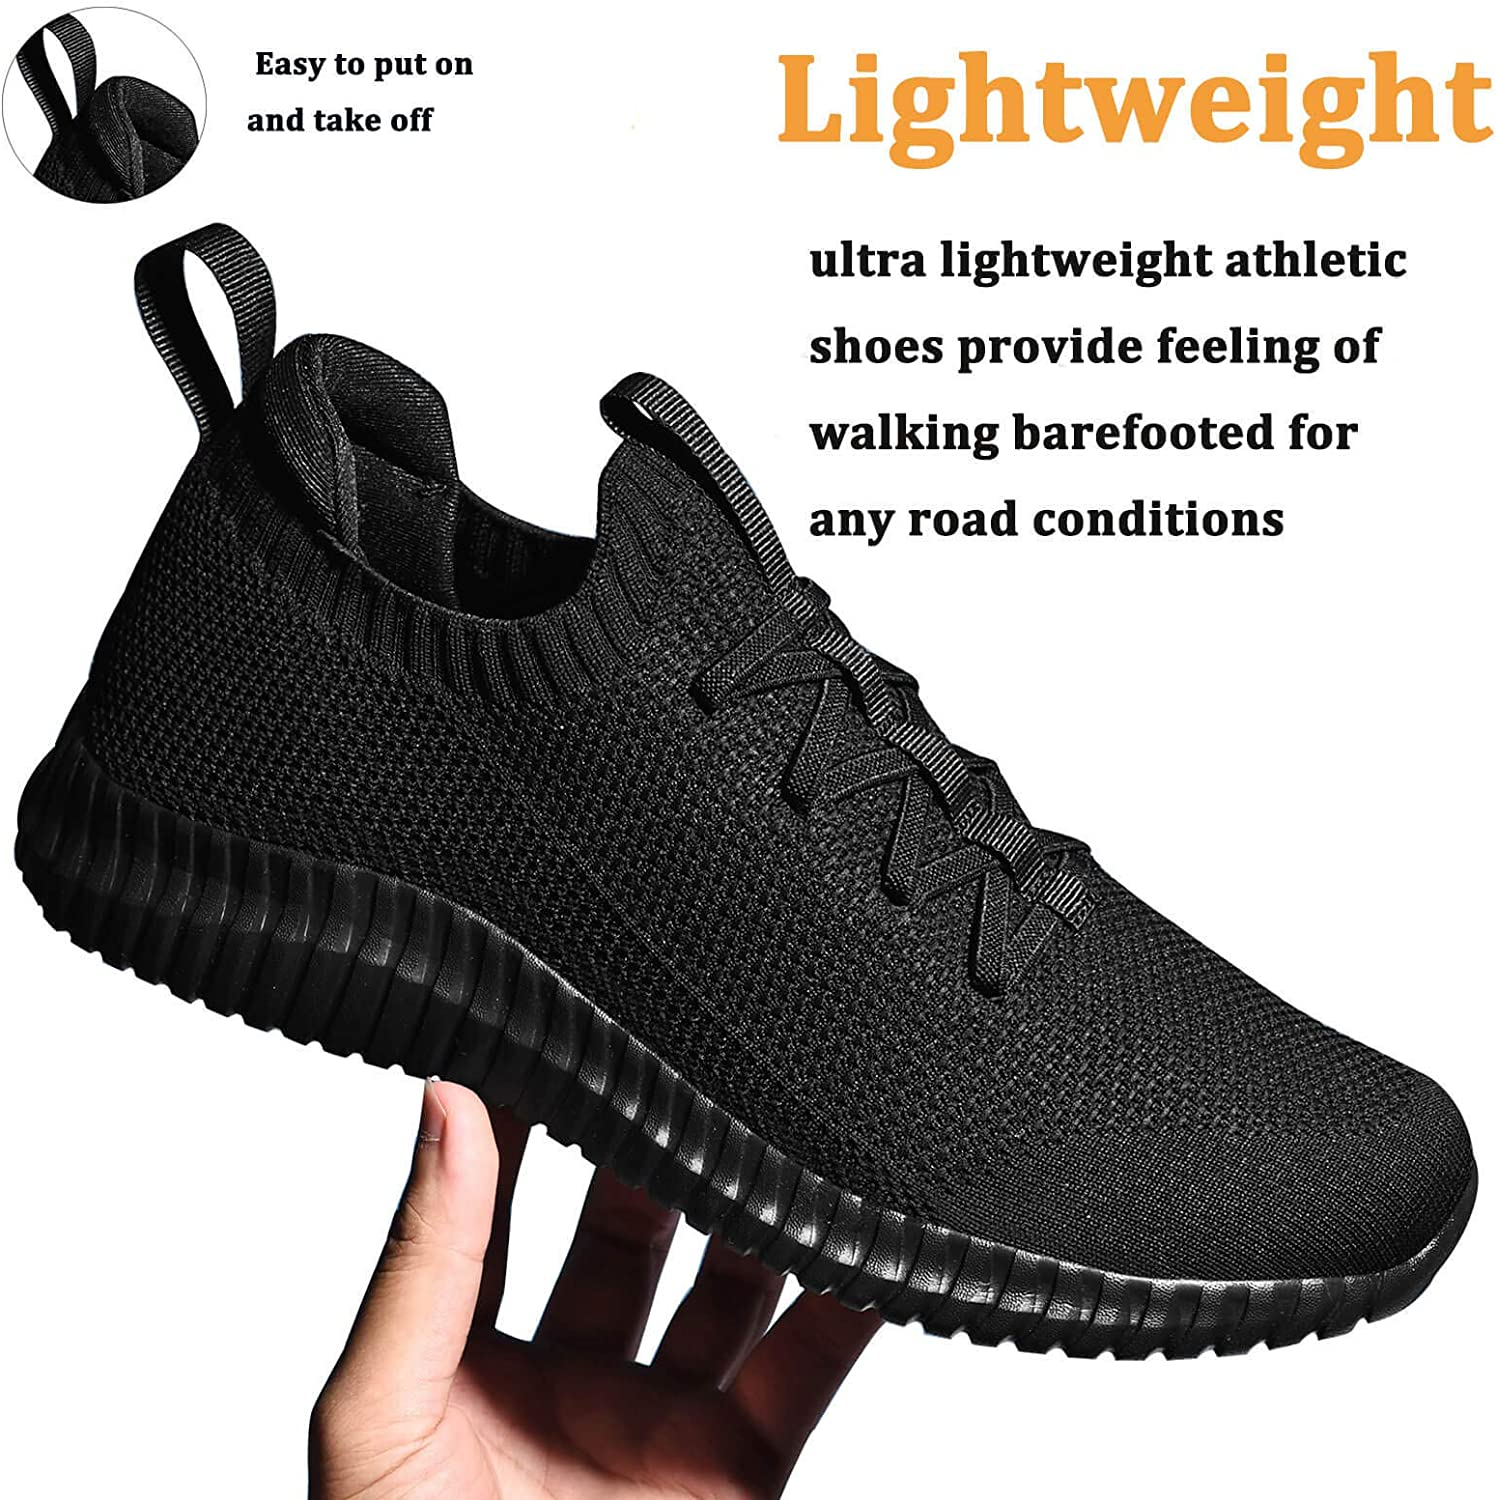 ziitop Mens Slip On Running Shoes Womens Walking Tennis Gym Athletic Shoes Breathable Lightweight Comfortable Fashion Non Slip Sneakers for Men Women